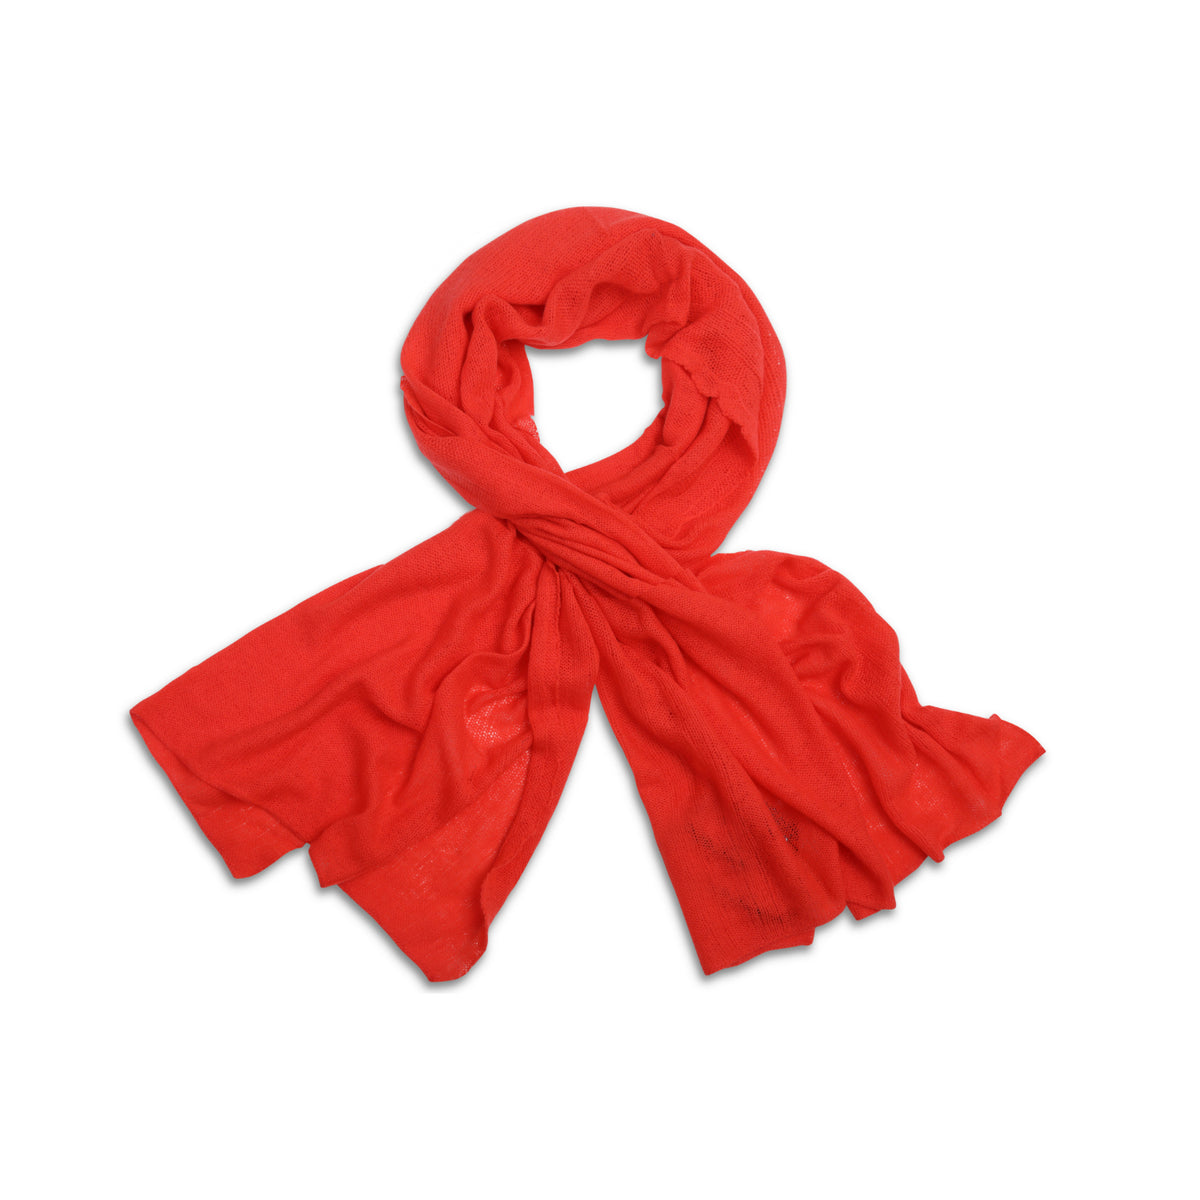 Geranium Red | Knitted Cashmere Stole | Knitted Cashmere Scarf | Shop at The Cashmere Choice | London